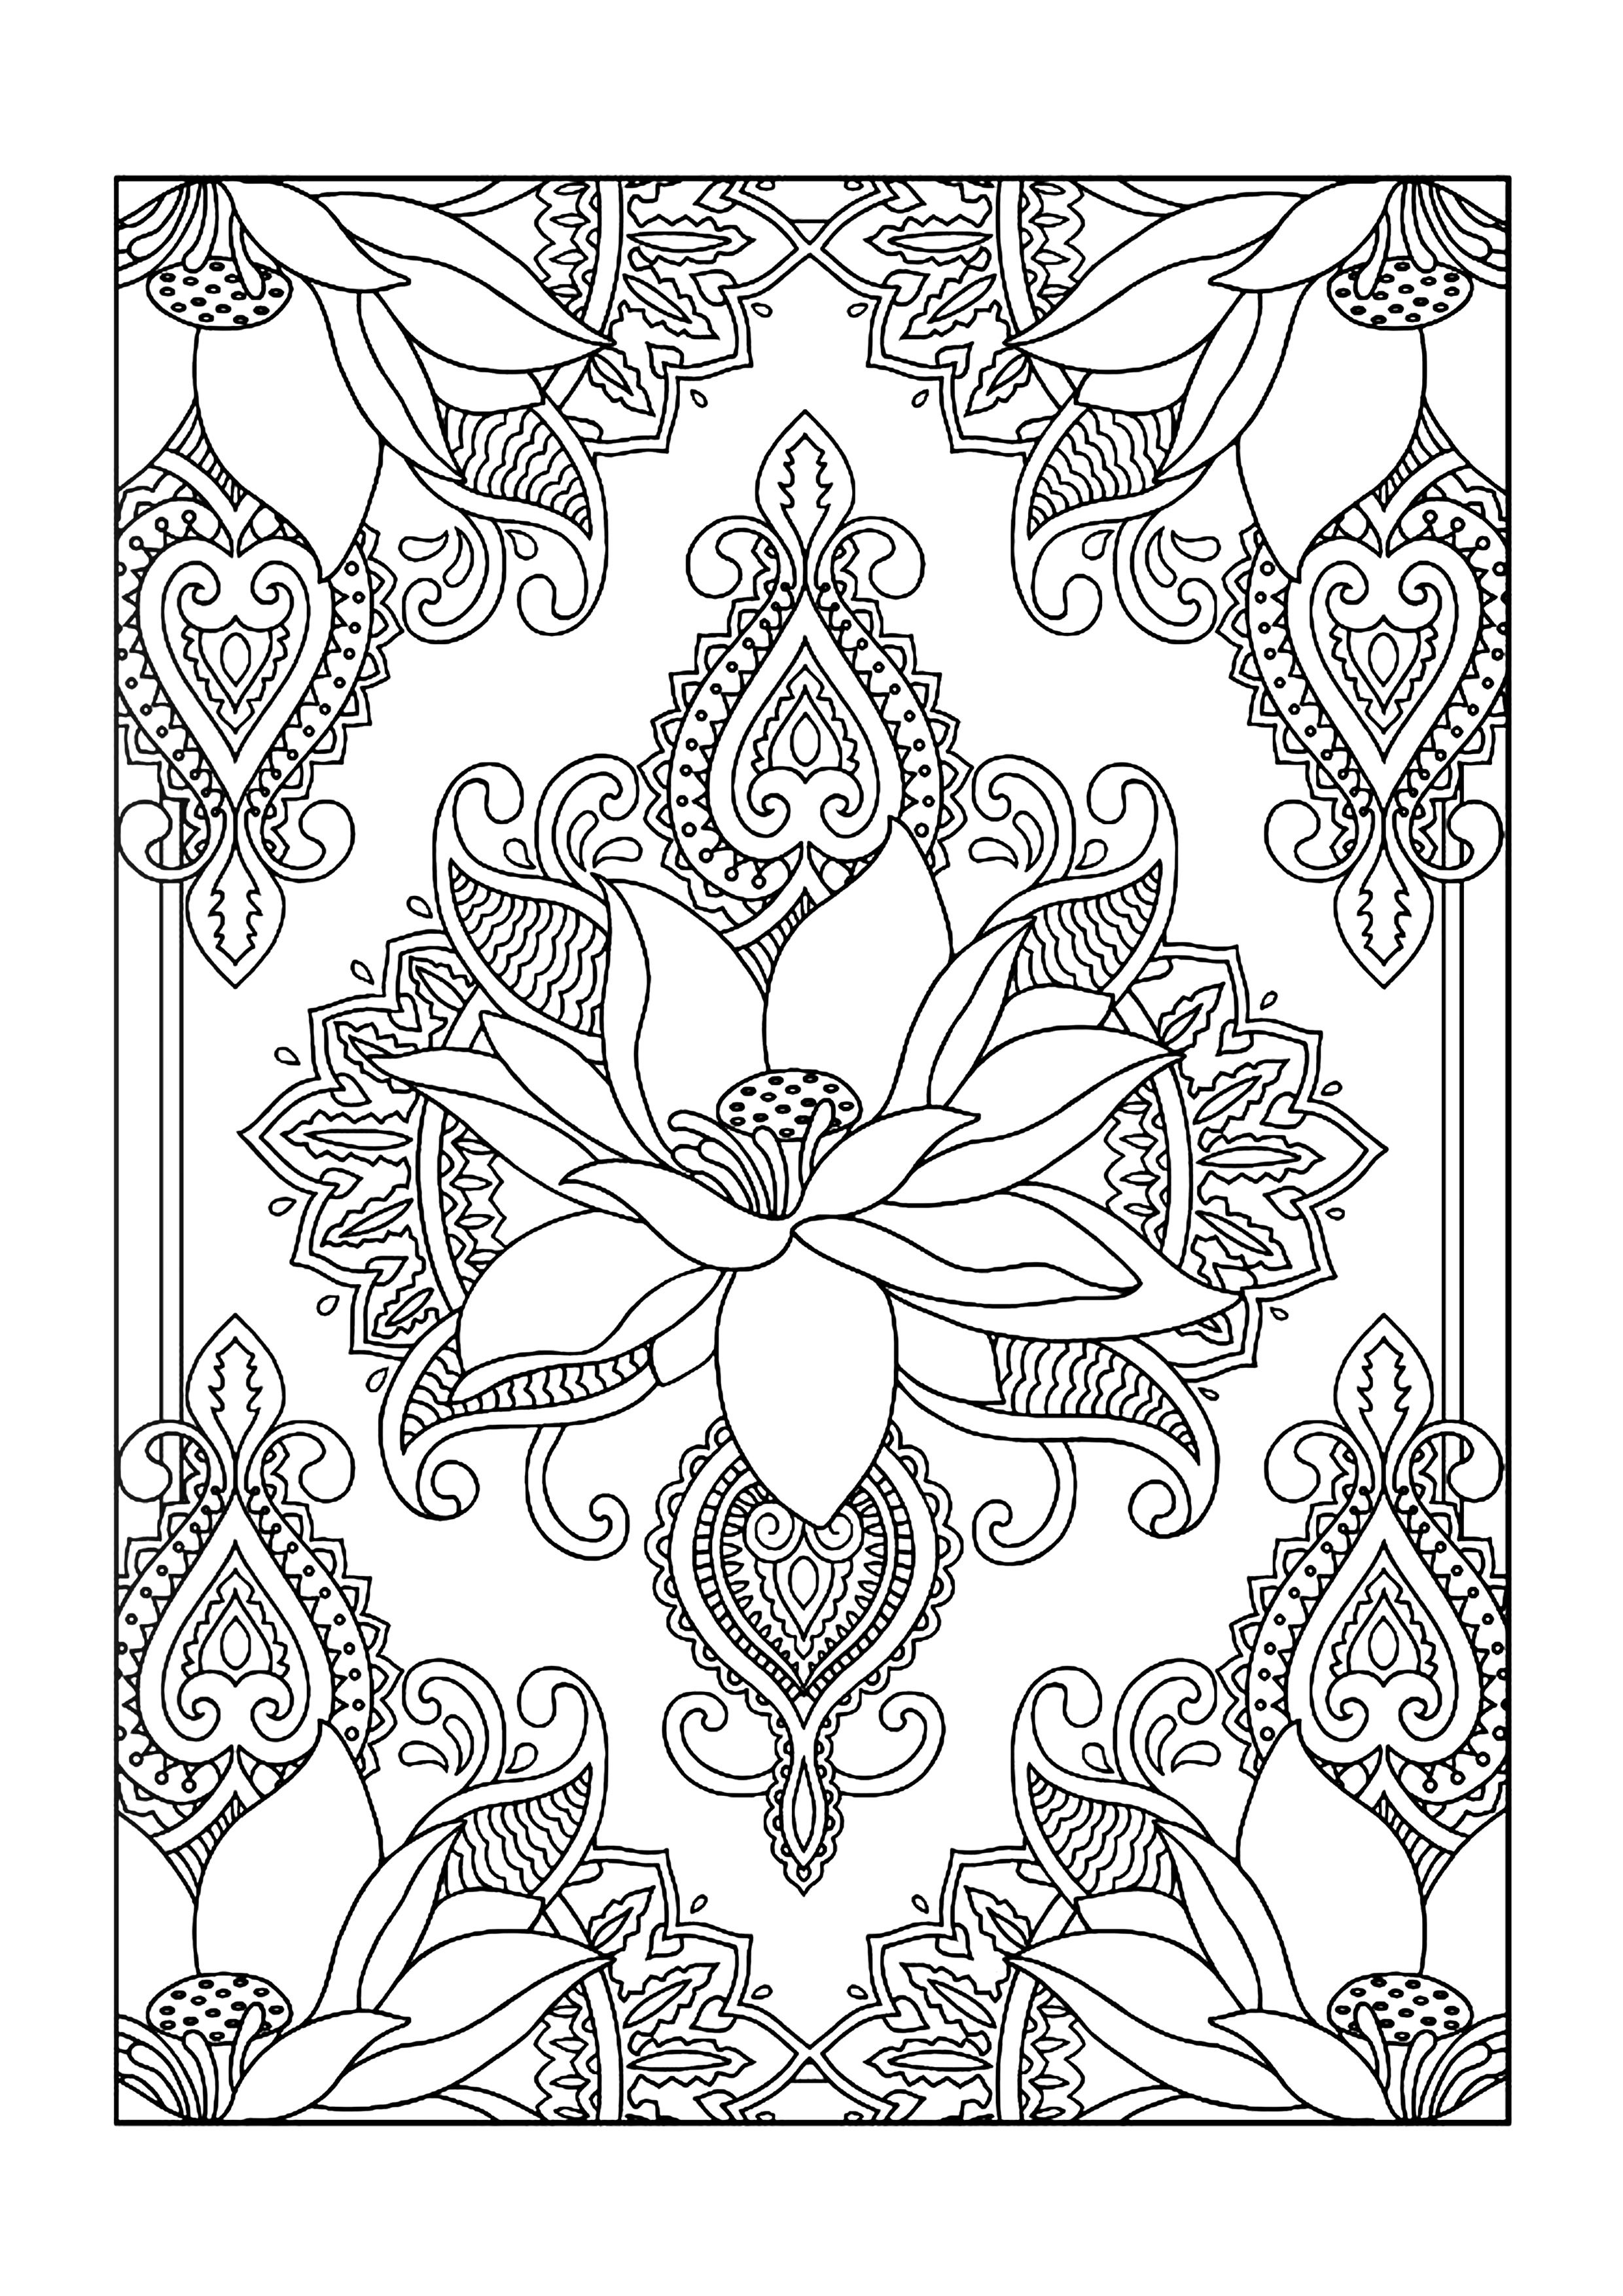 Lotus designs coloring book - Welcome To Dover Publications Creative Haven Magnificent Mehndi Designs Coloring Book Artwork By Marty Noble